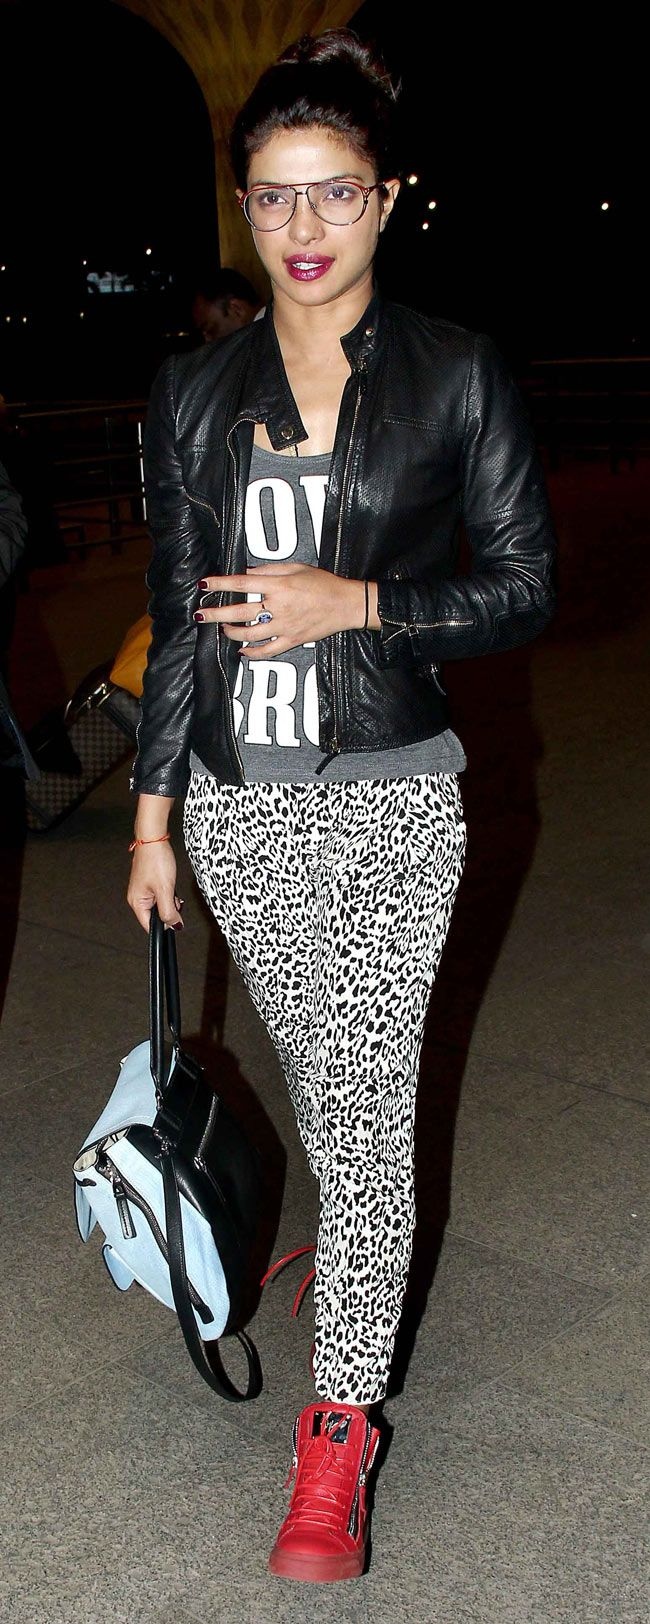 Fall's Biggest Trend: Animal Prints - Discover More Fall ...